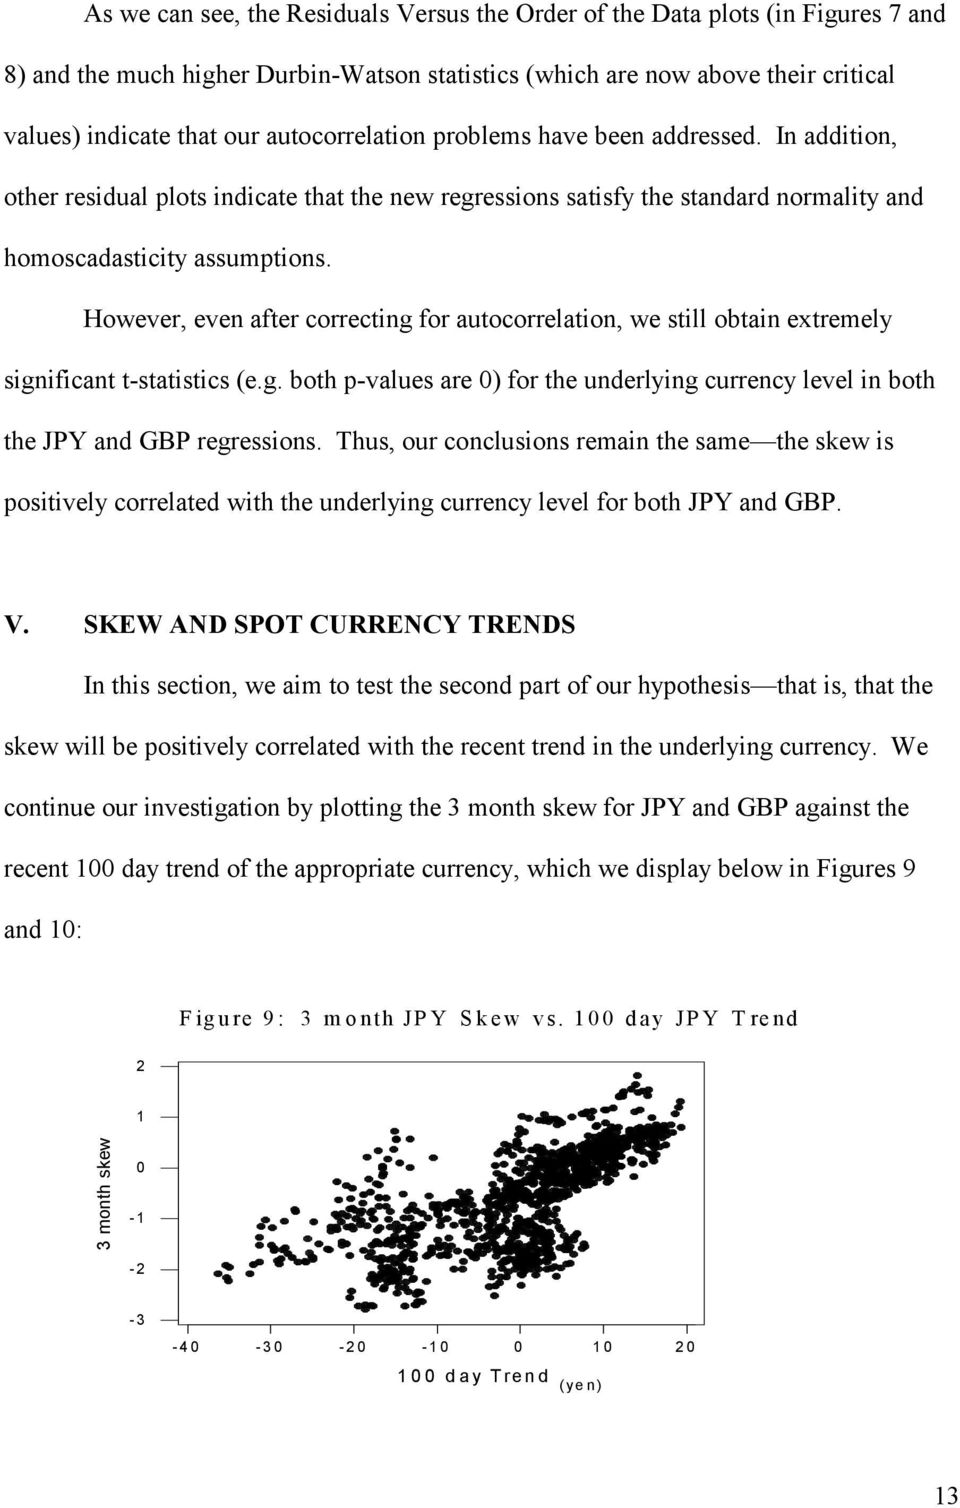 However, even after correcting for autocorrelation, we still obtain extremely significant t-statistics (e.g. both p-values are 0) for the underlying currency level in both the JPY and GBP regressions.